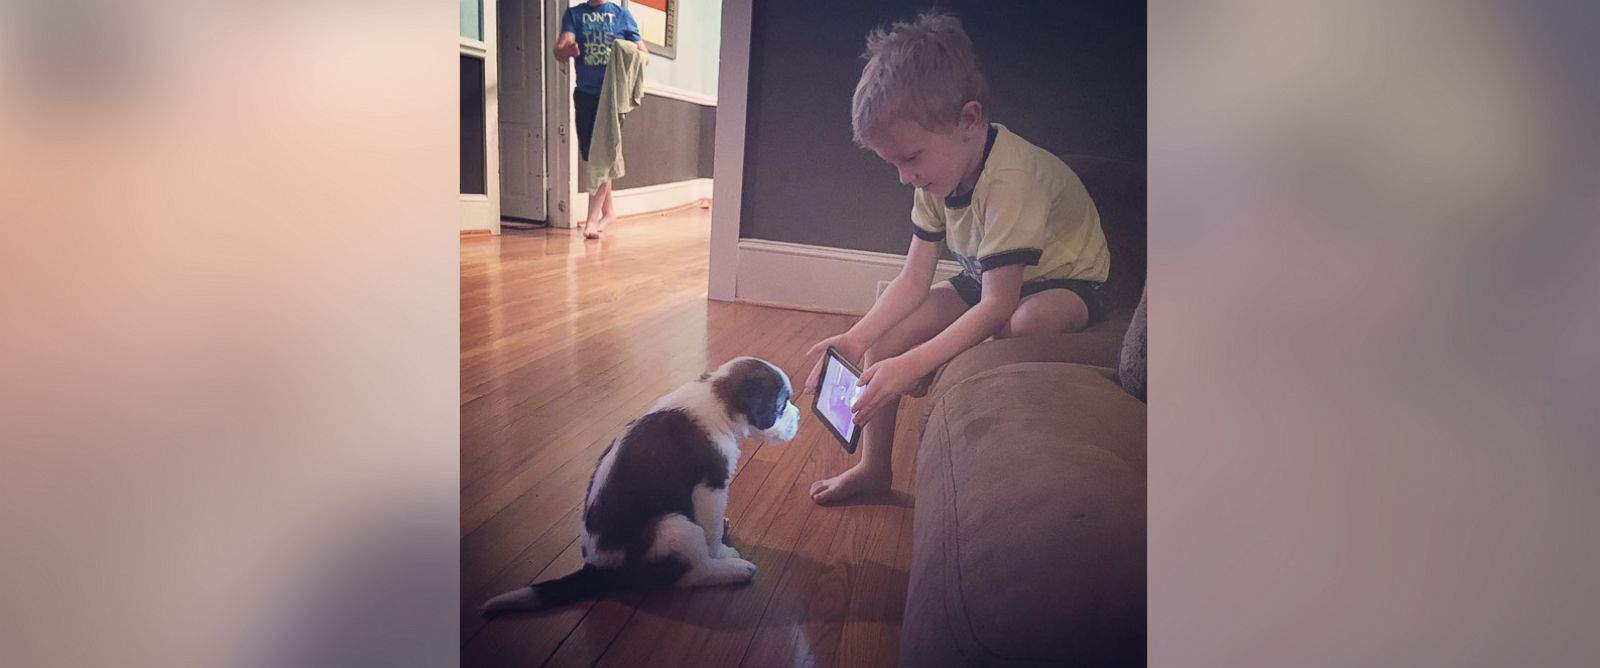 Boy teaching dog through video